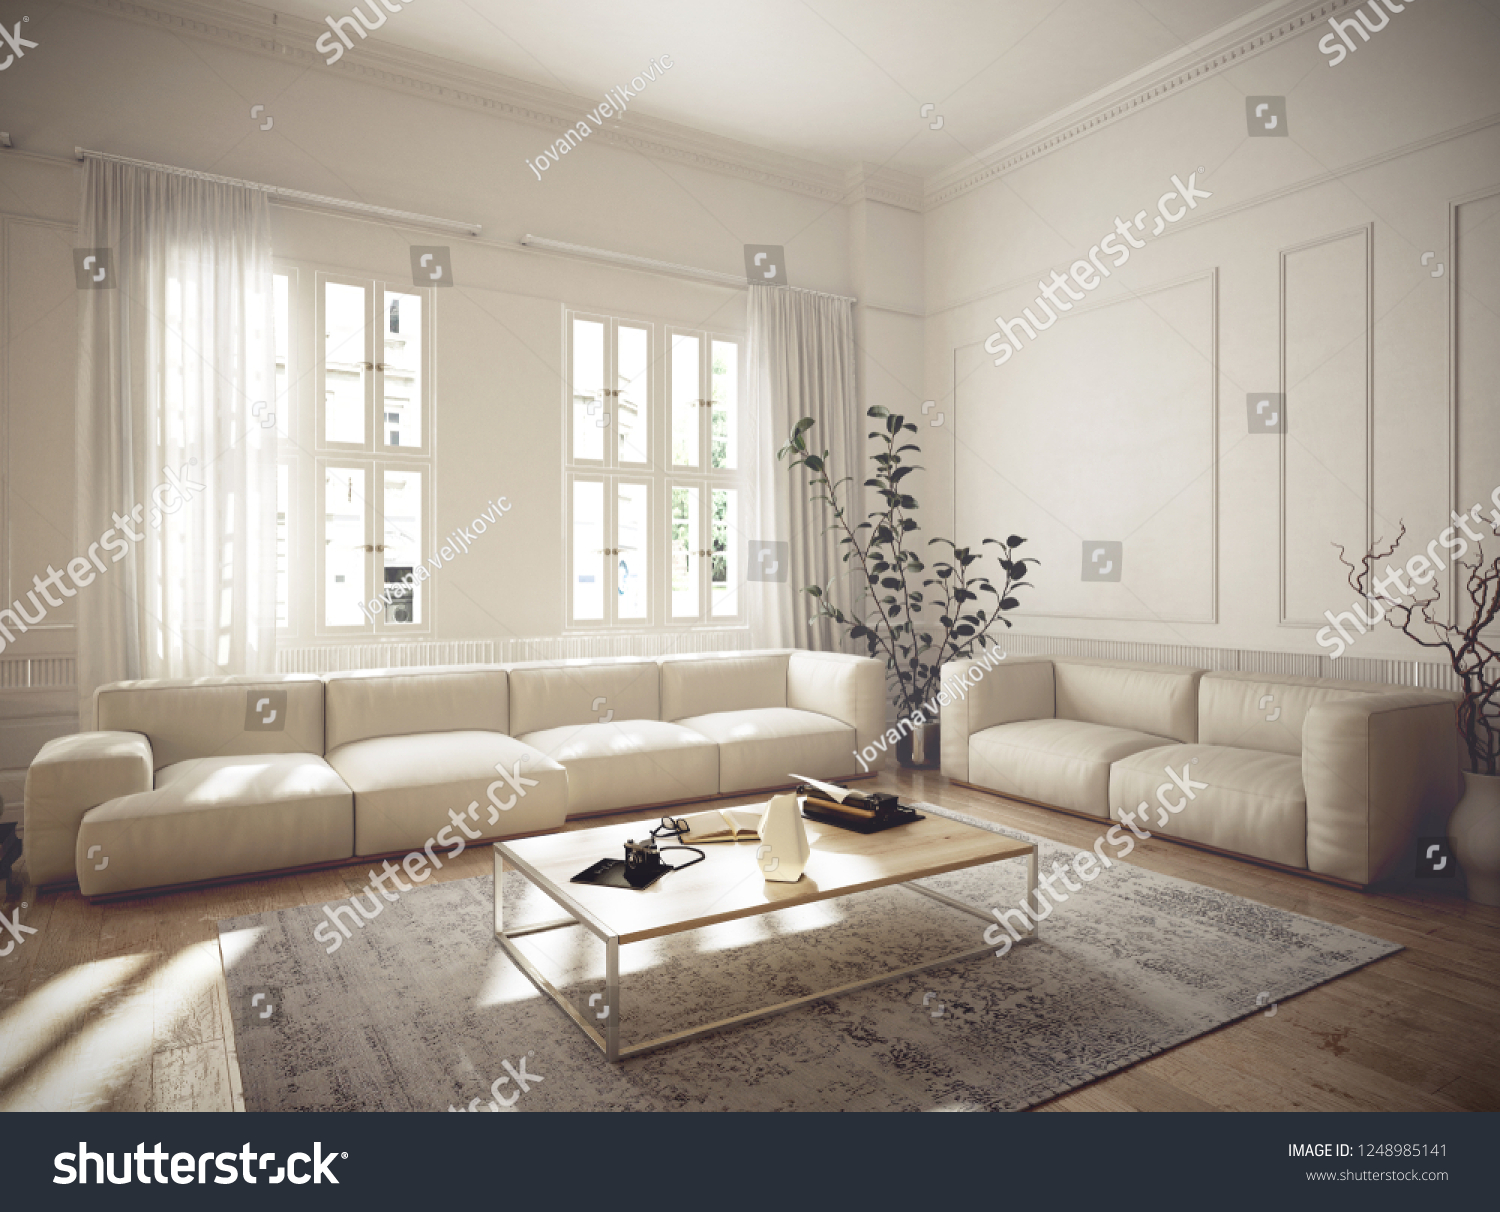 Vintage style penthouse living room interior - 3 d render